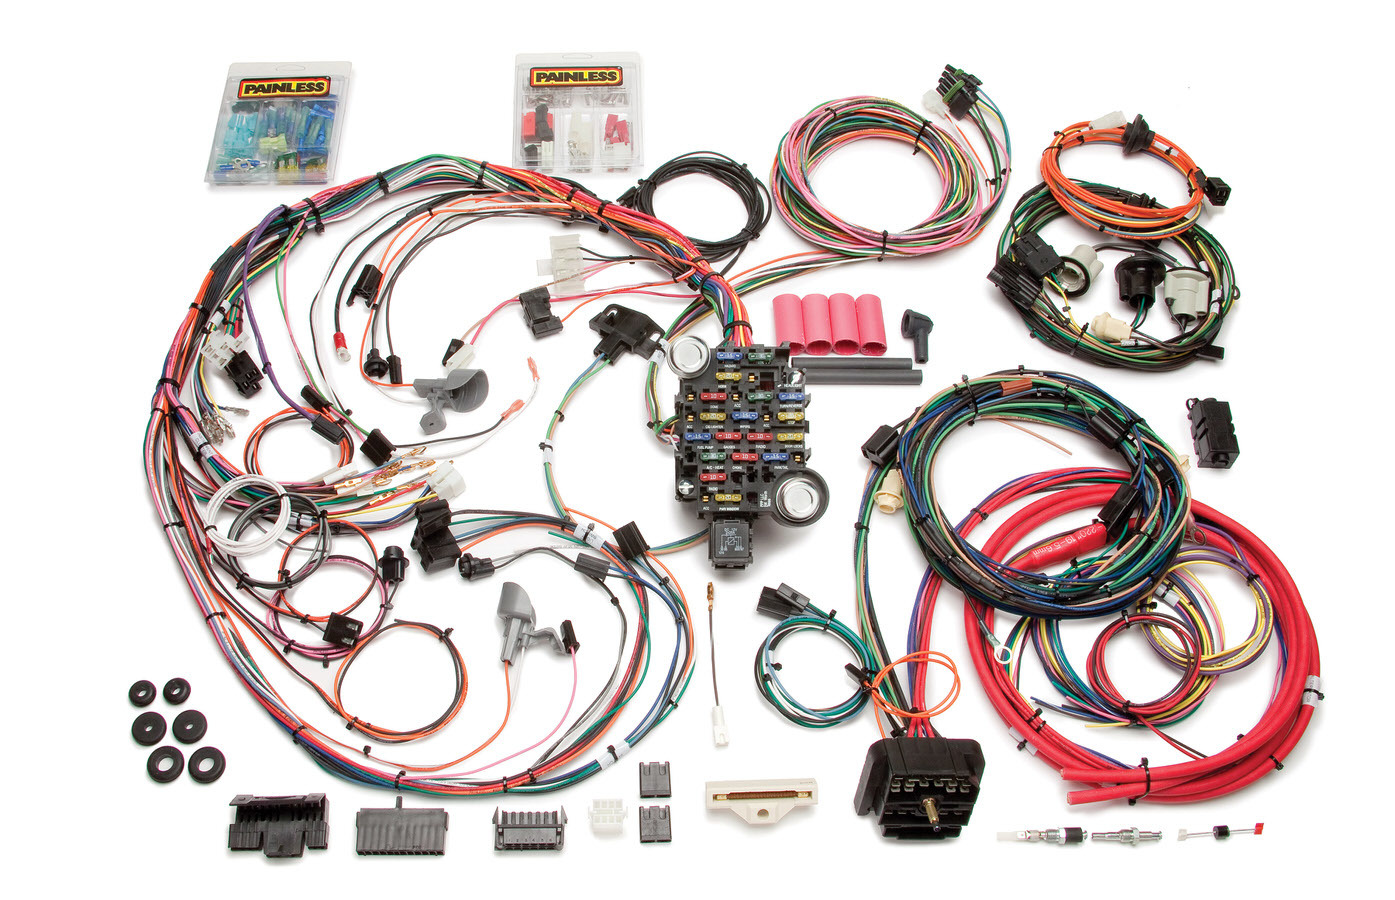 Painless Wiring 20112 Car Wiring Harness, Direct Fit, Complete, 26 Circuit, Chevy Camaro 1970-73, Kit